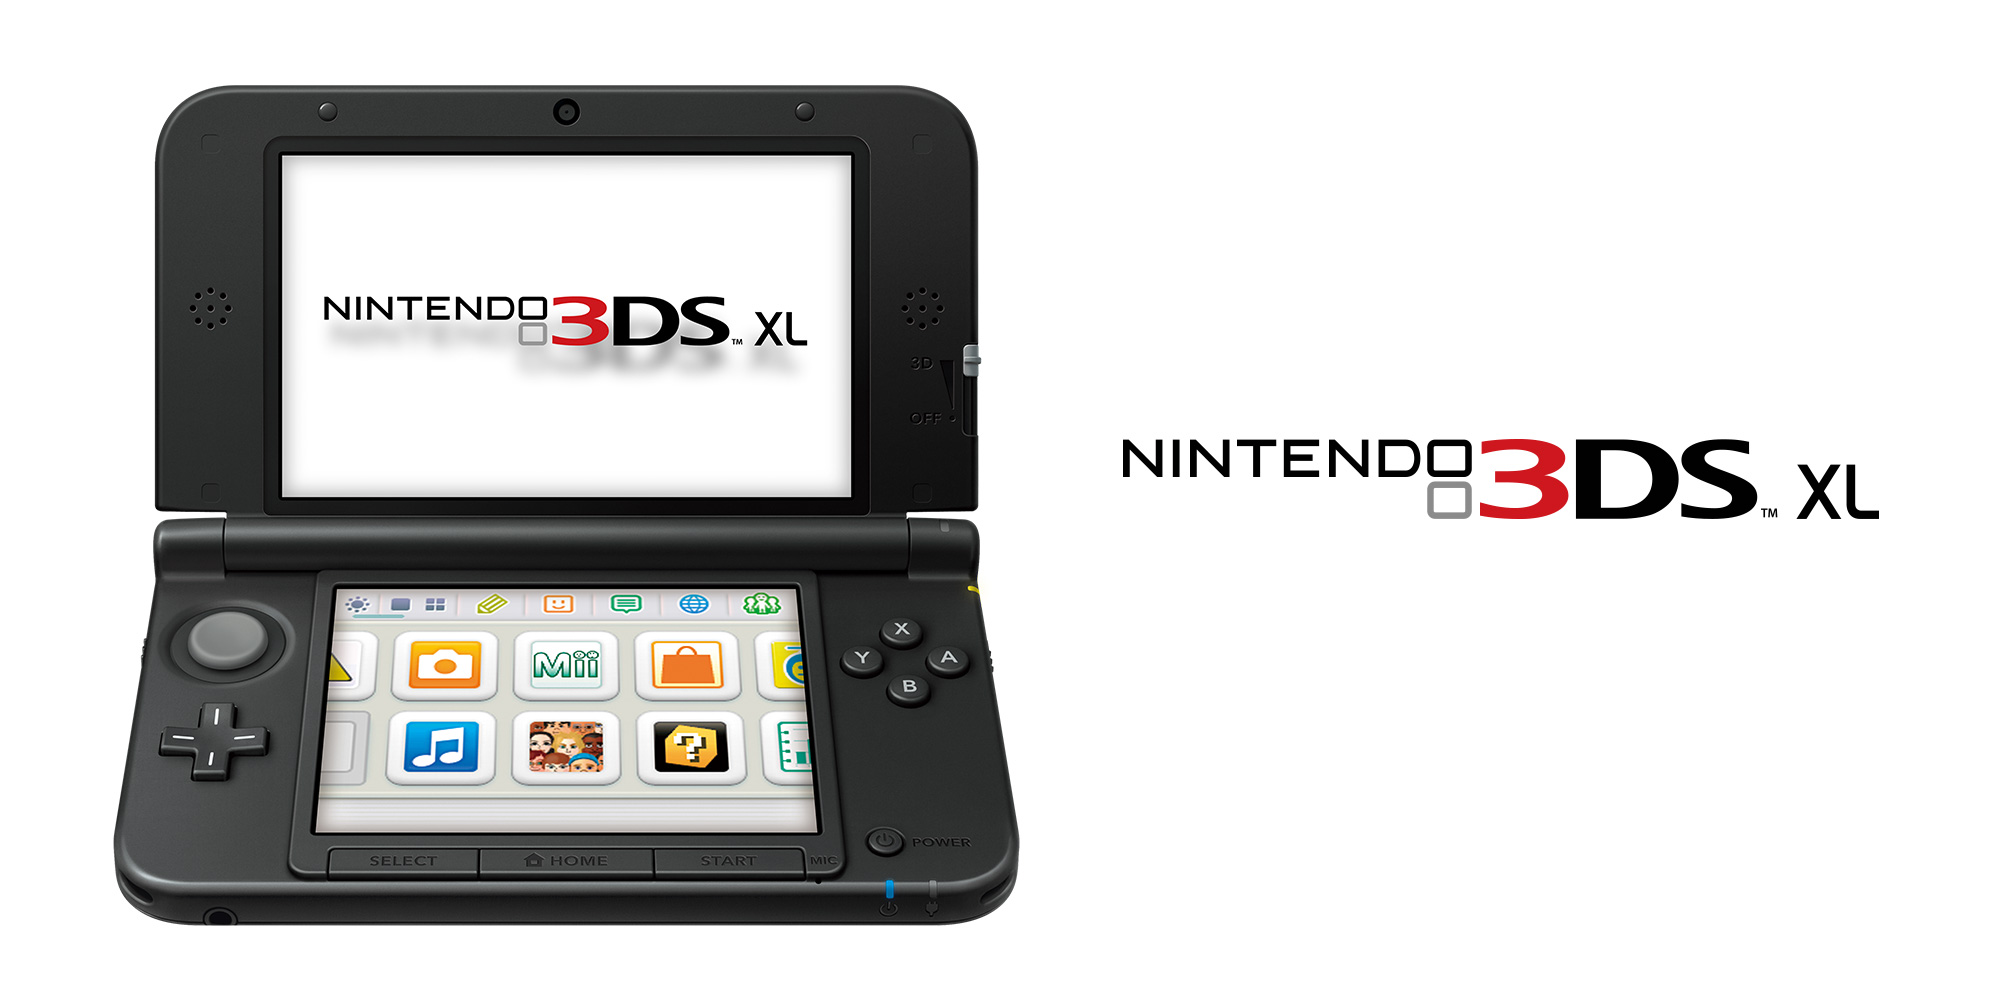 Nintendo 3ds Xl Games : Nintendo ds xl family